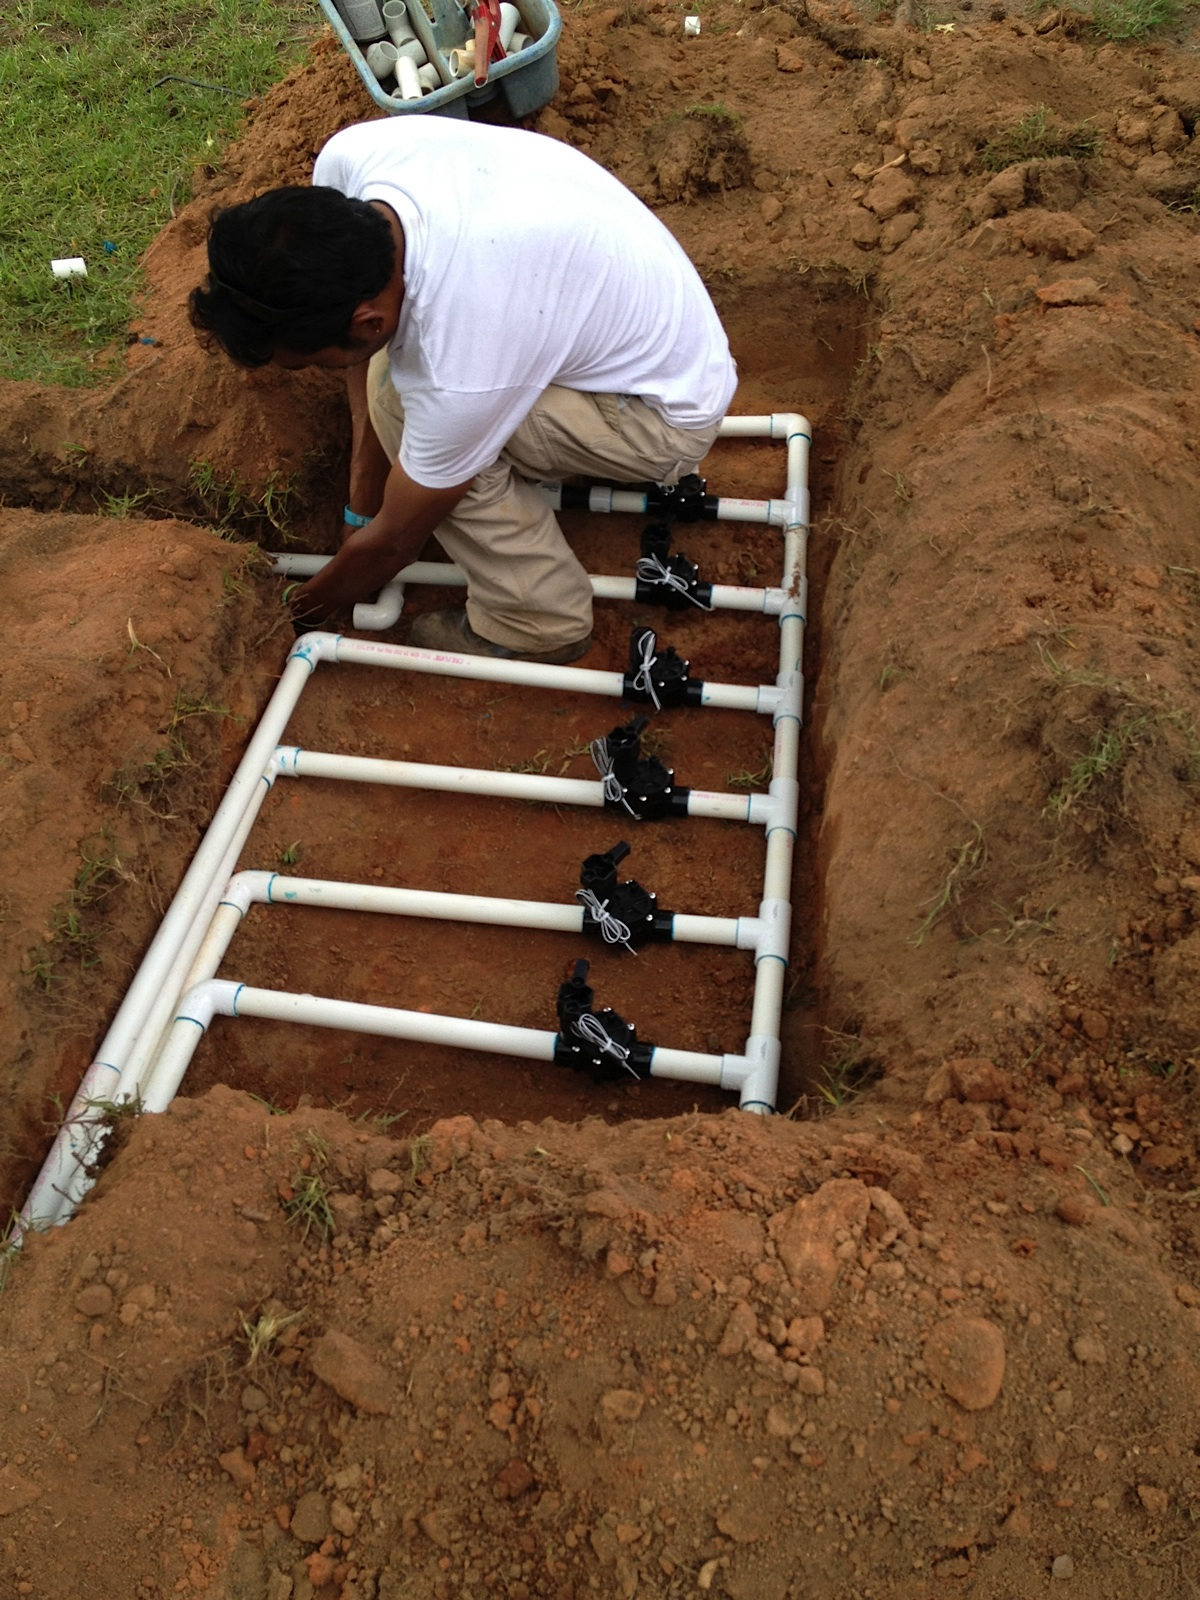 Outstanding Irrigation Systems Sprinkler Systems Cochran Sc Wiring Cloud Eachirenstrafr09Org